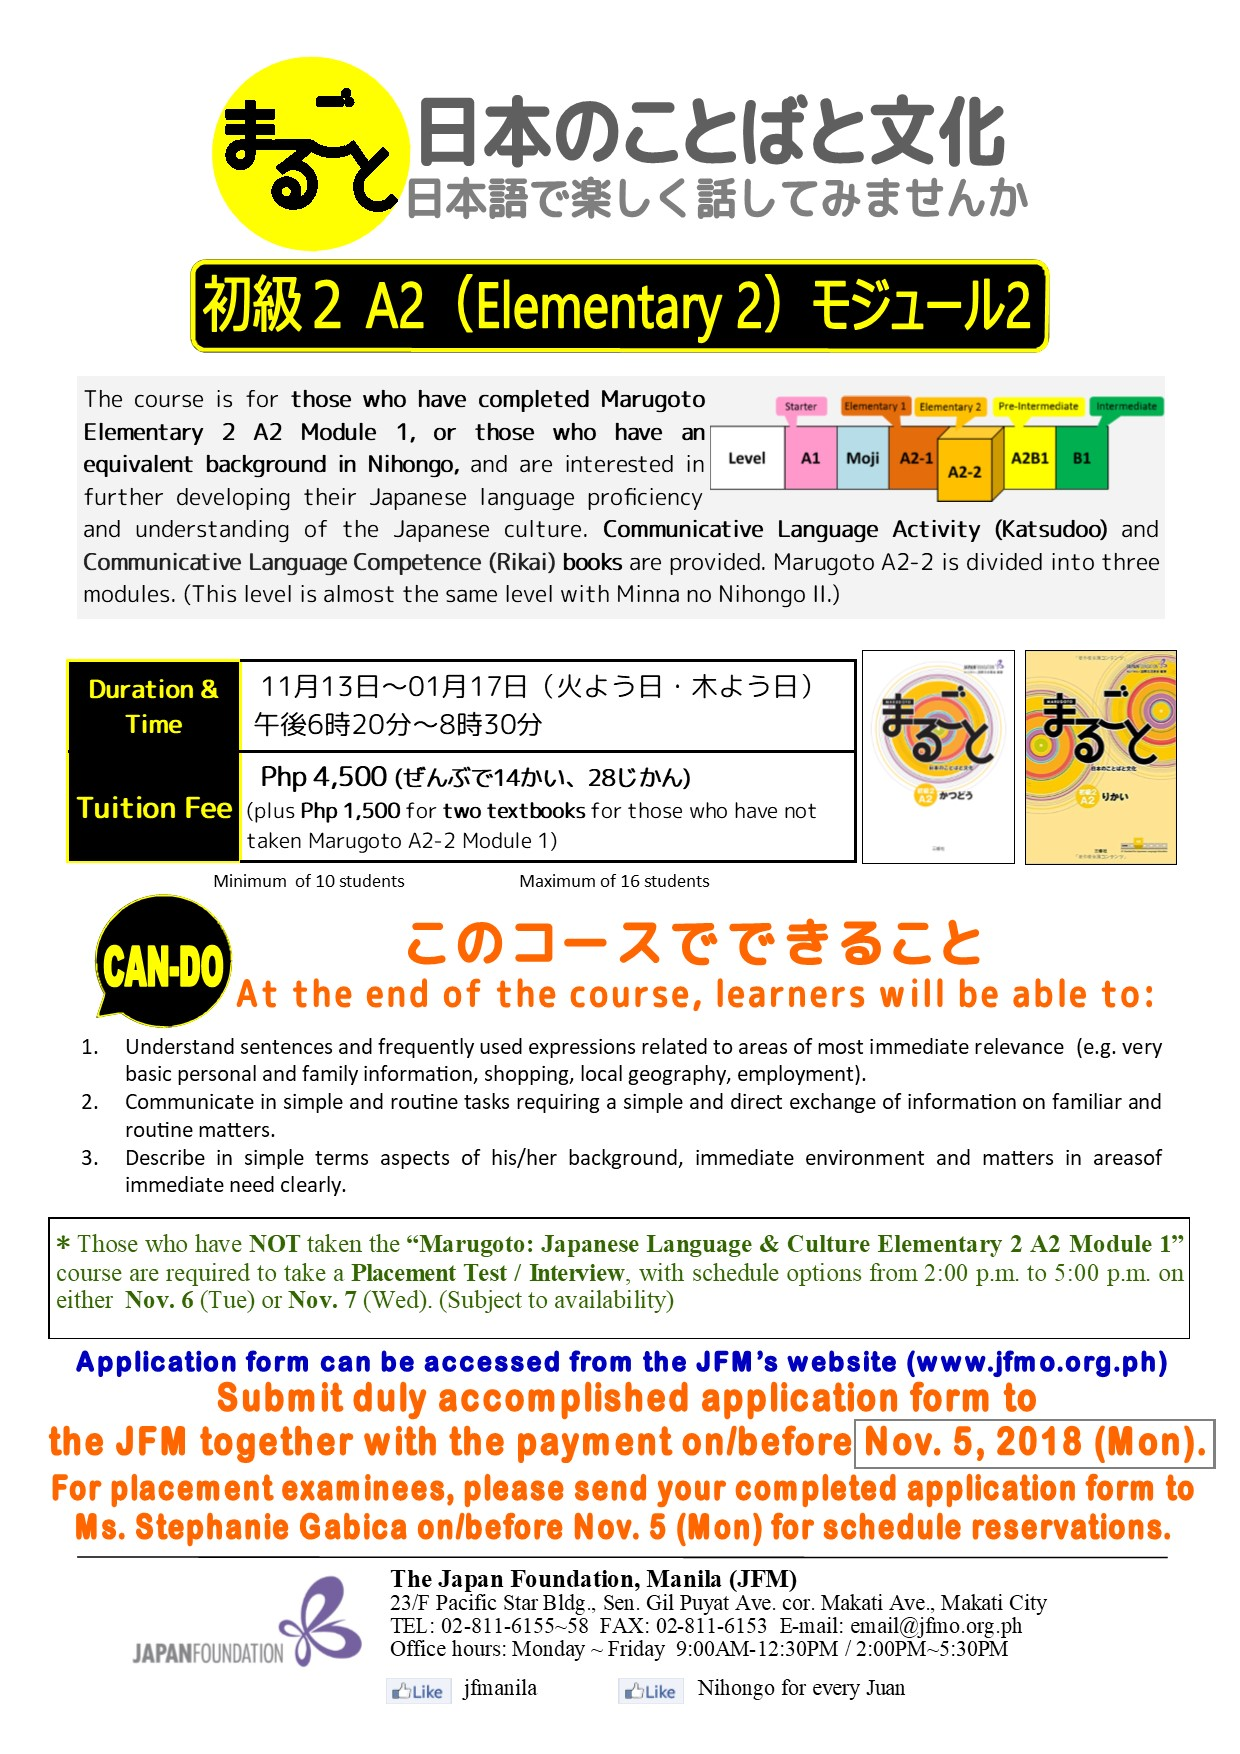 MARUGOTO Conversational Japanese for Everyone Elementary 2 A2 Module 2 – Deadline: Nov. 5, 2018